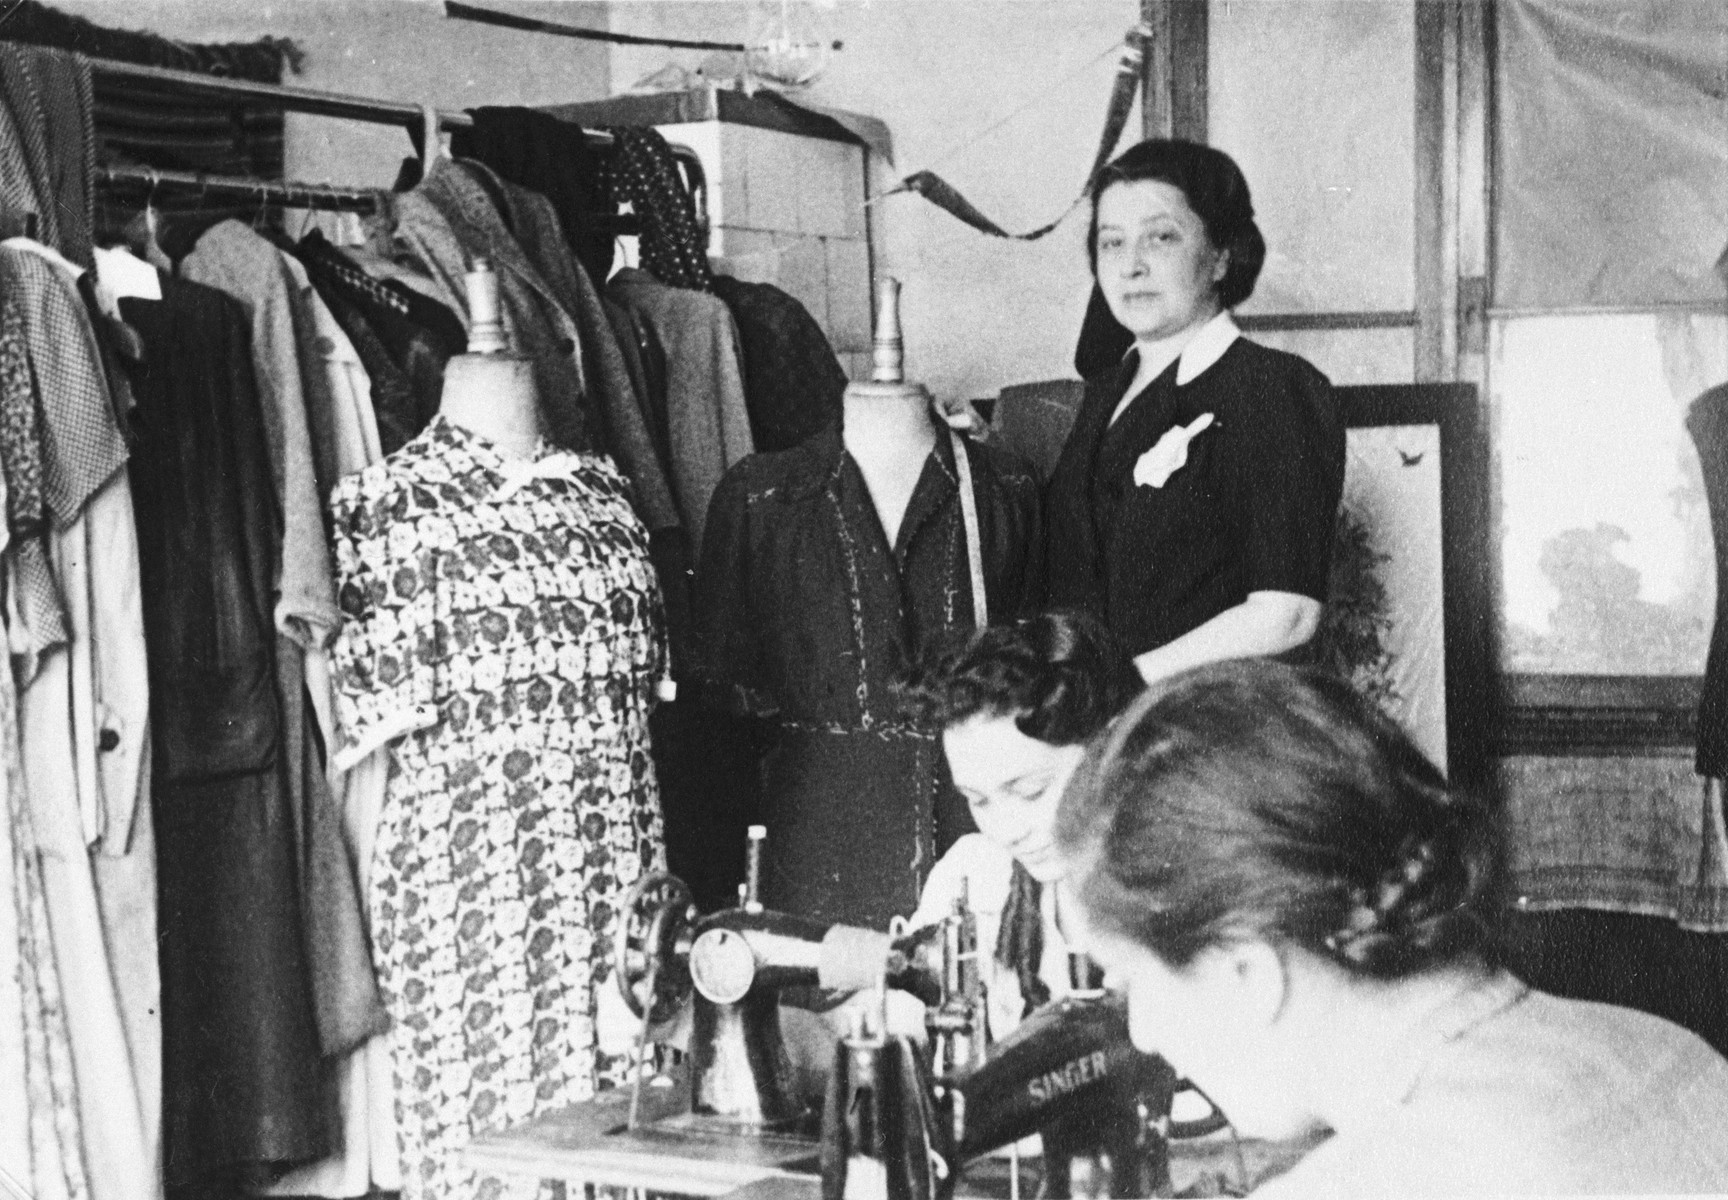 Female employees work in the Julius Madritsch Ladies' Custom Shop.  Standing is the manager Mrs. Minder and seated at the machine is Dziunia Eichenholz.